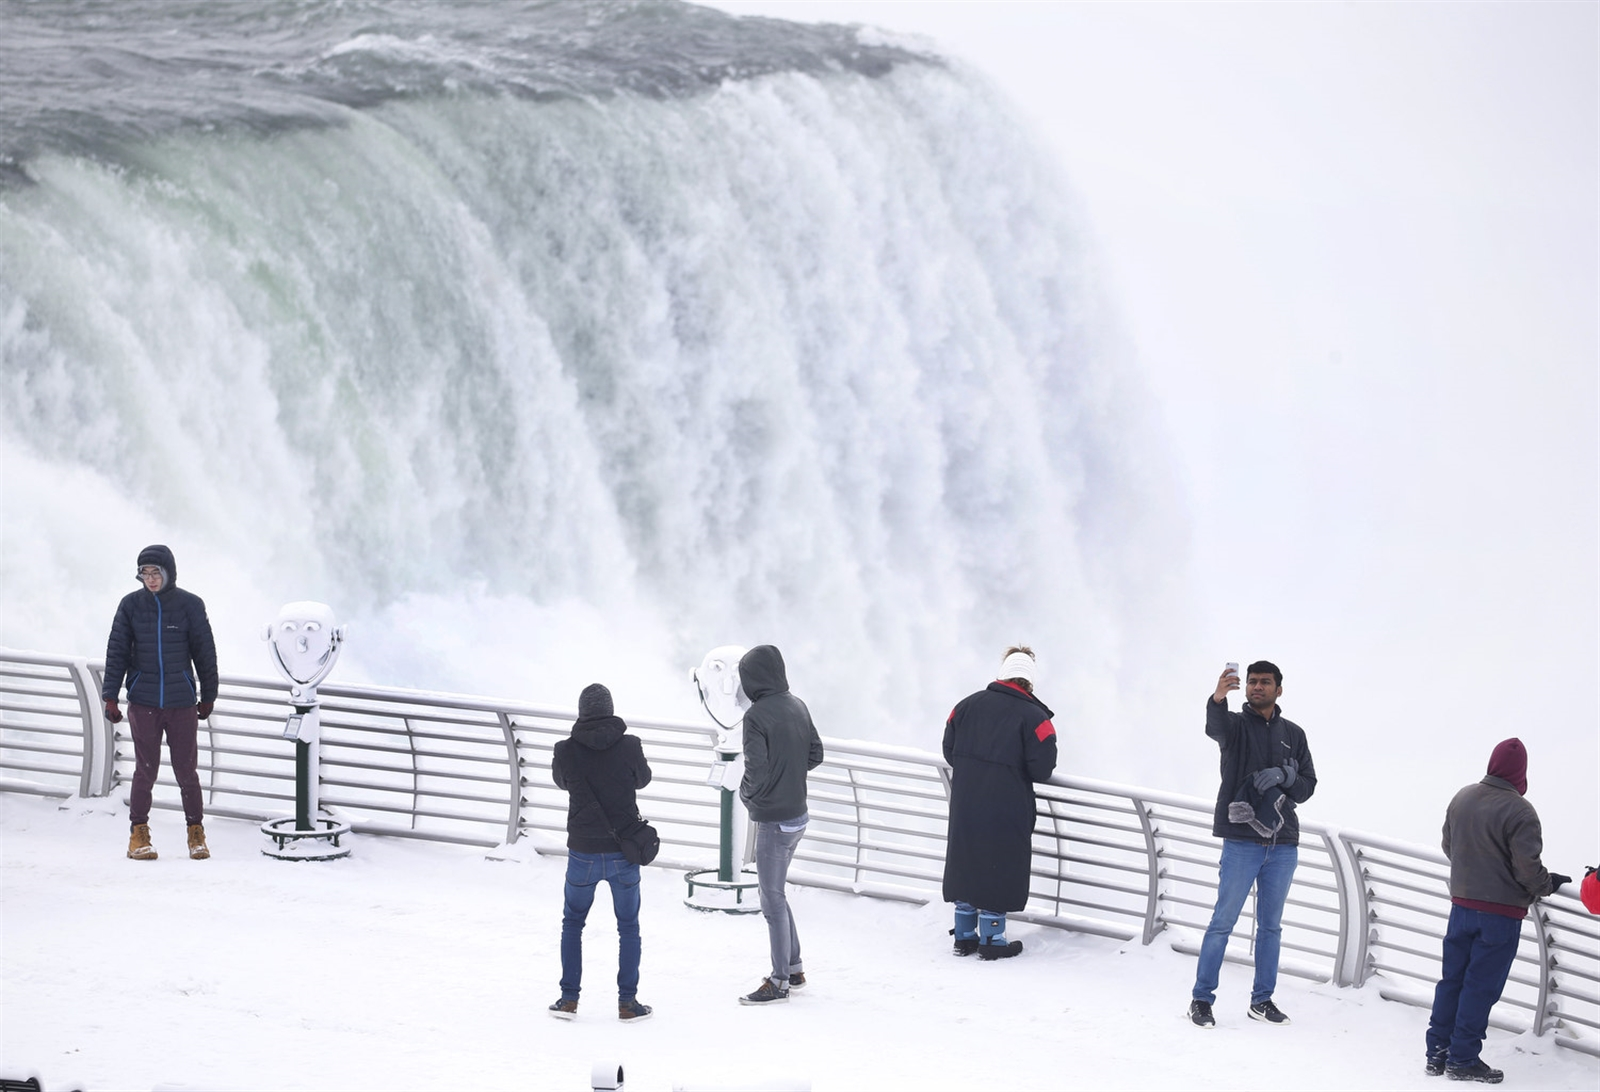 Tourists admire the American Falls at Prospect Point.